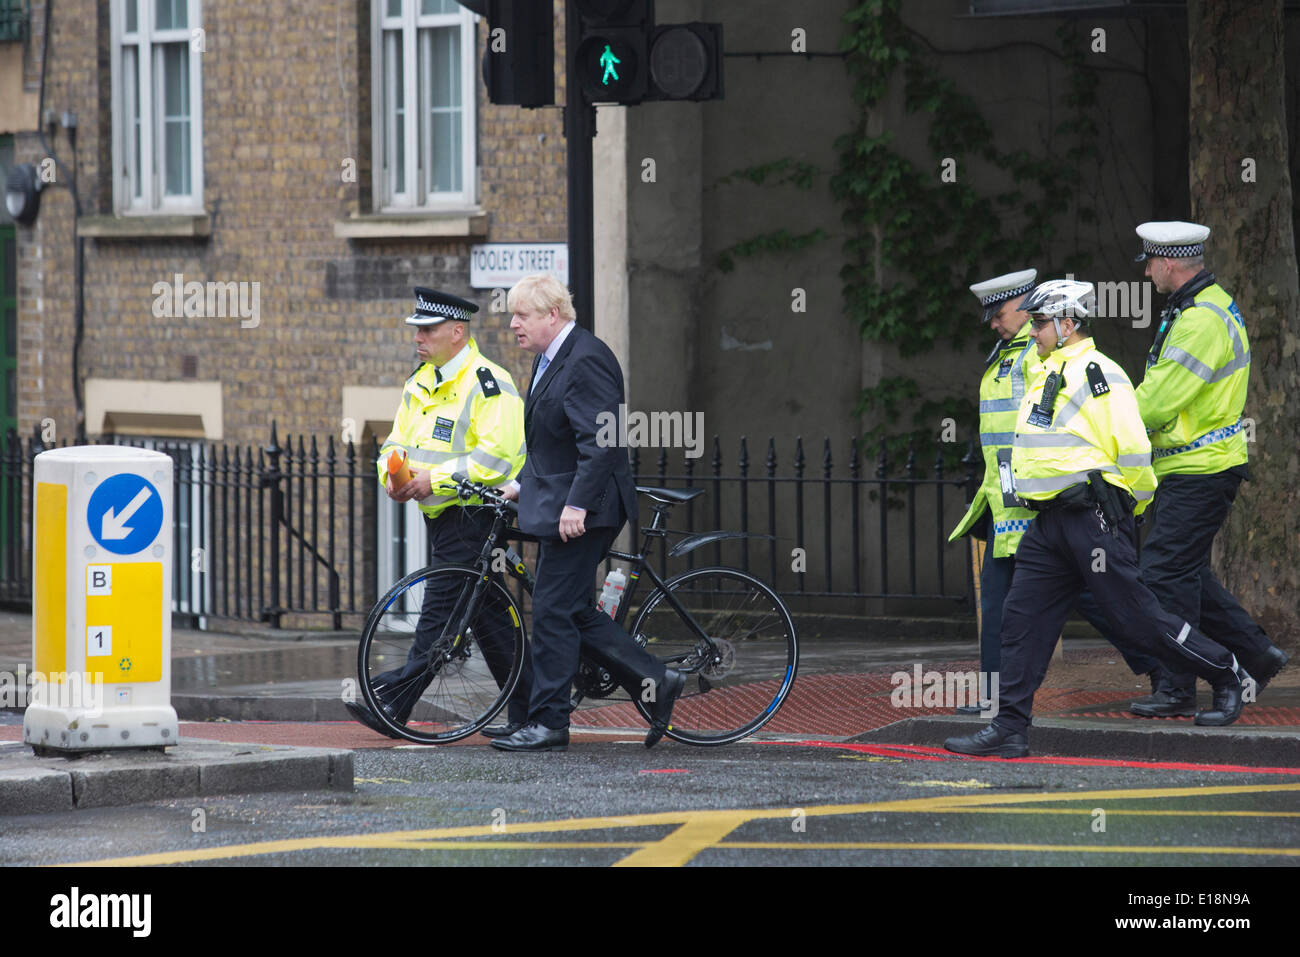 London, UK. 27 May 2014. Photocall with Boris Johnson and Superintendent Rob Revill, MPS Saver Transport Command. London Mayor Boris Johnson backs police road safety operations as serious cyclist injuries fall by 28 per cent in 2013 compared to 2012. Serious injuries to cyclists were down to 465 in 2013 from 657 in 2012. One in 433,000 cycle journeys made in London in 2013 ended in the cyclist being killed or seriously injured. Credit:  Nick Savage/Alamy Live News - Stock Image